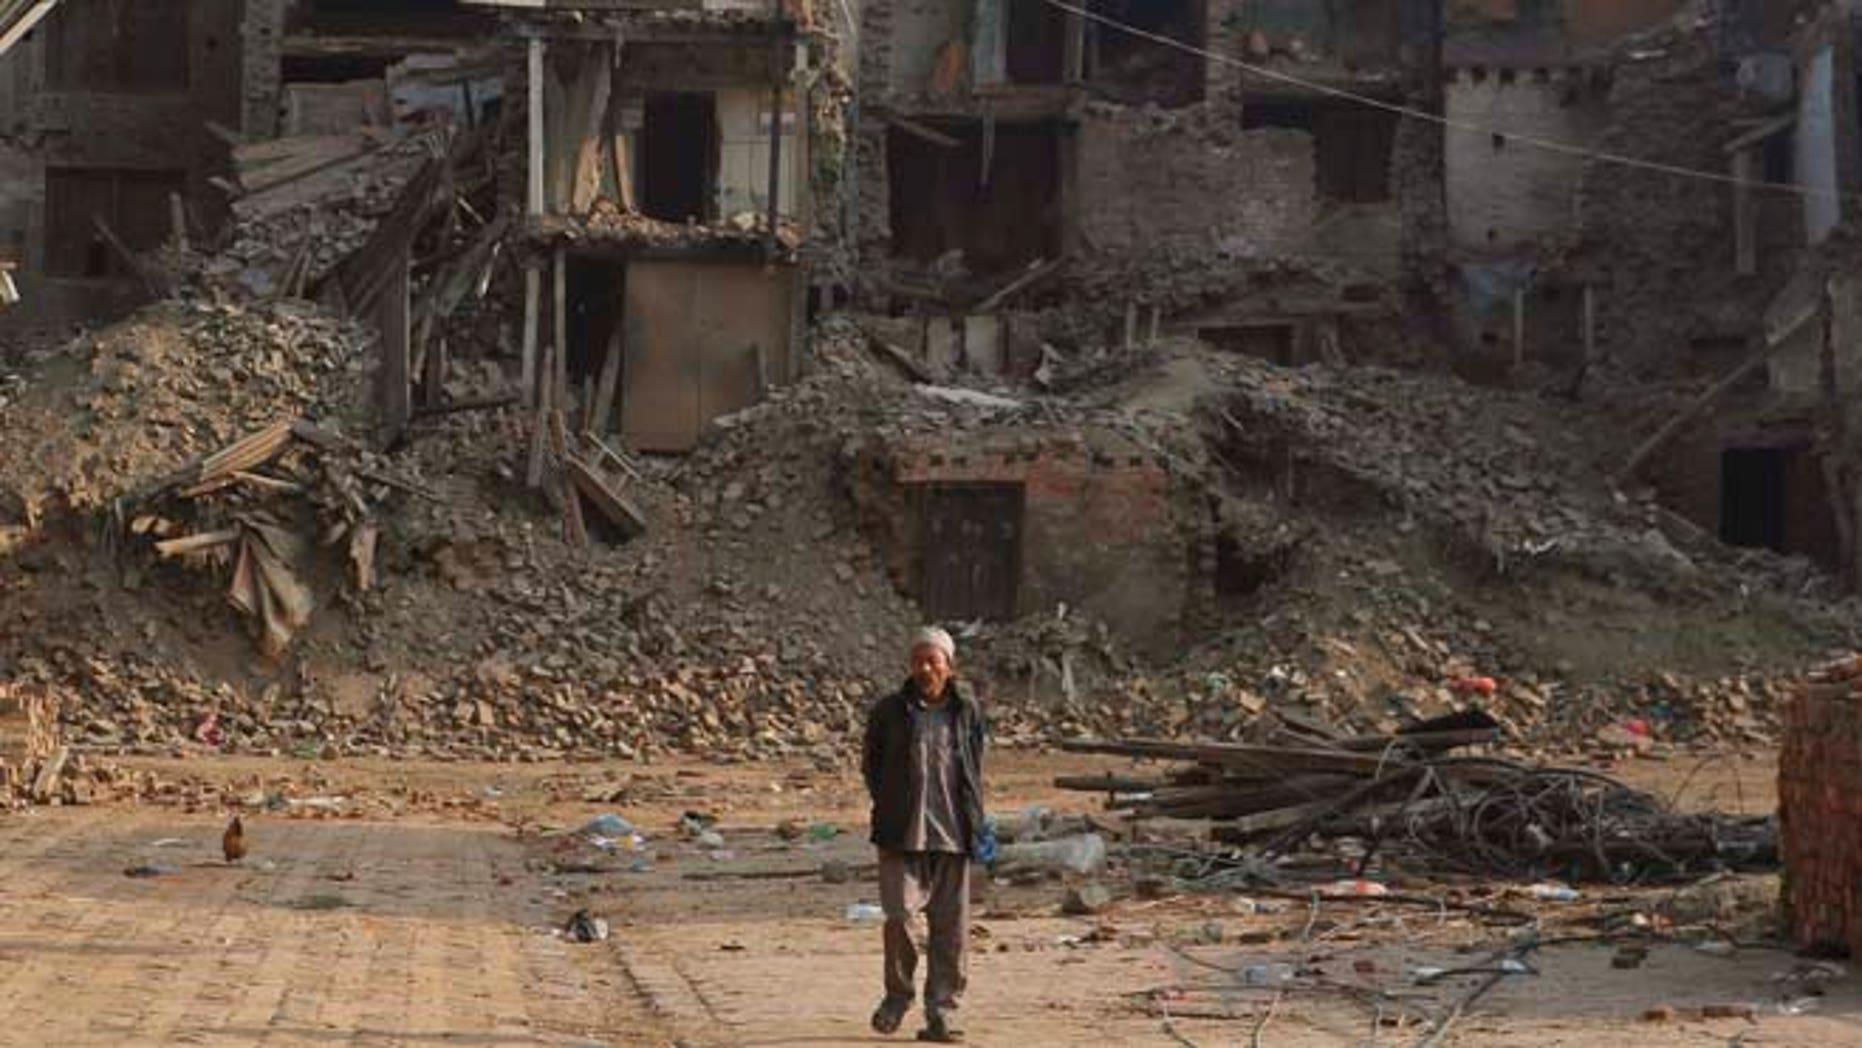 May 25, 2015: A Nepalese man walks past damaged houses one month after the deadly 7.8 magnitude earthquake in Kathmandu, Nepal.